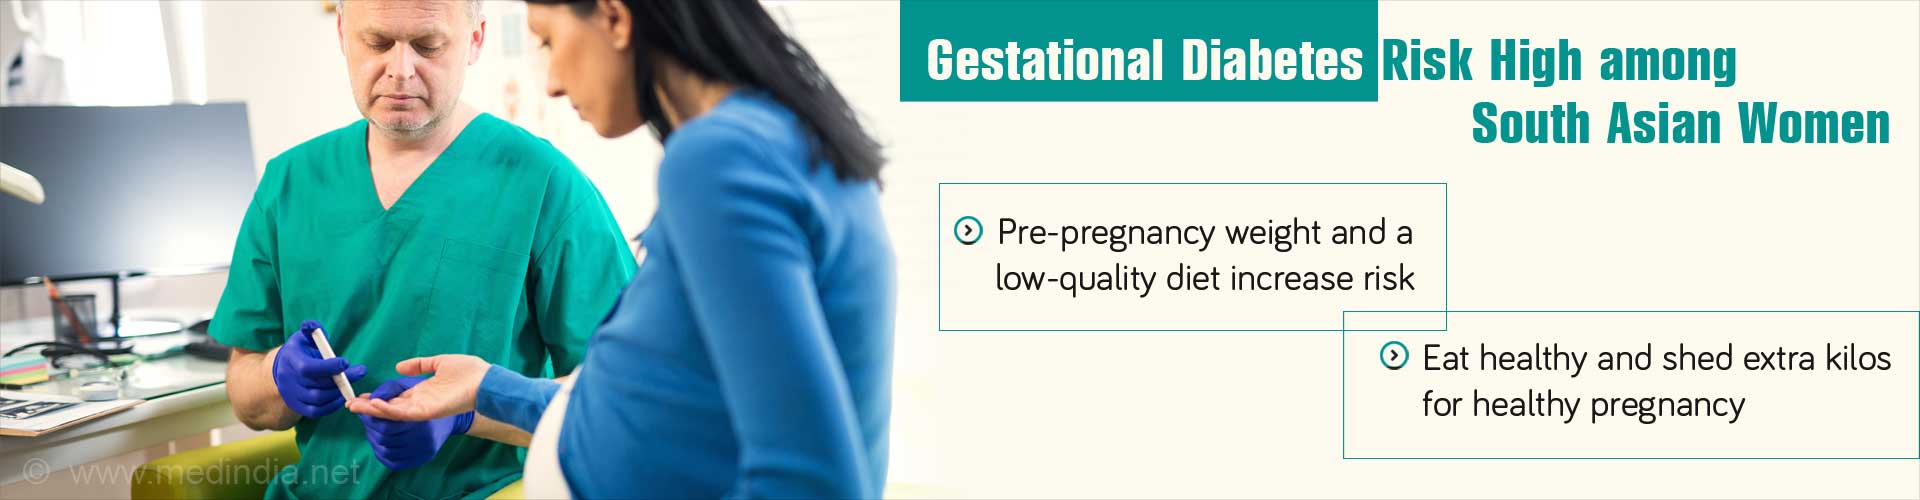 Healthy Diet and Normal Weight can Lower Risk of Gestational Diabetes